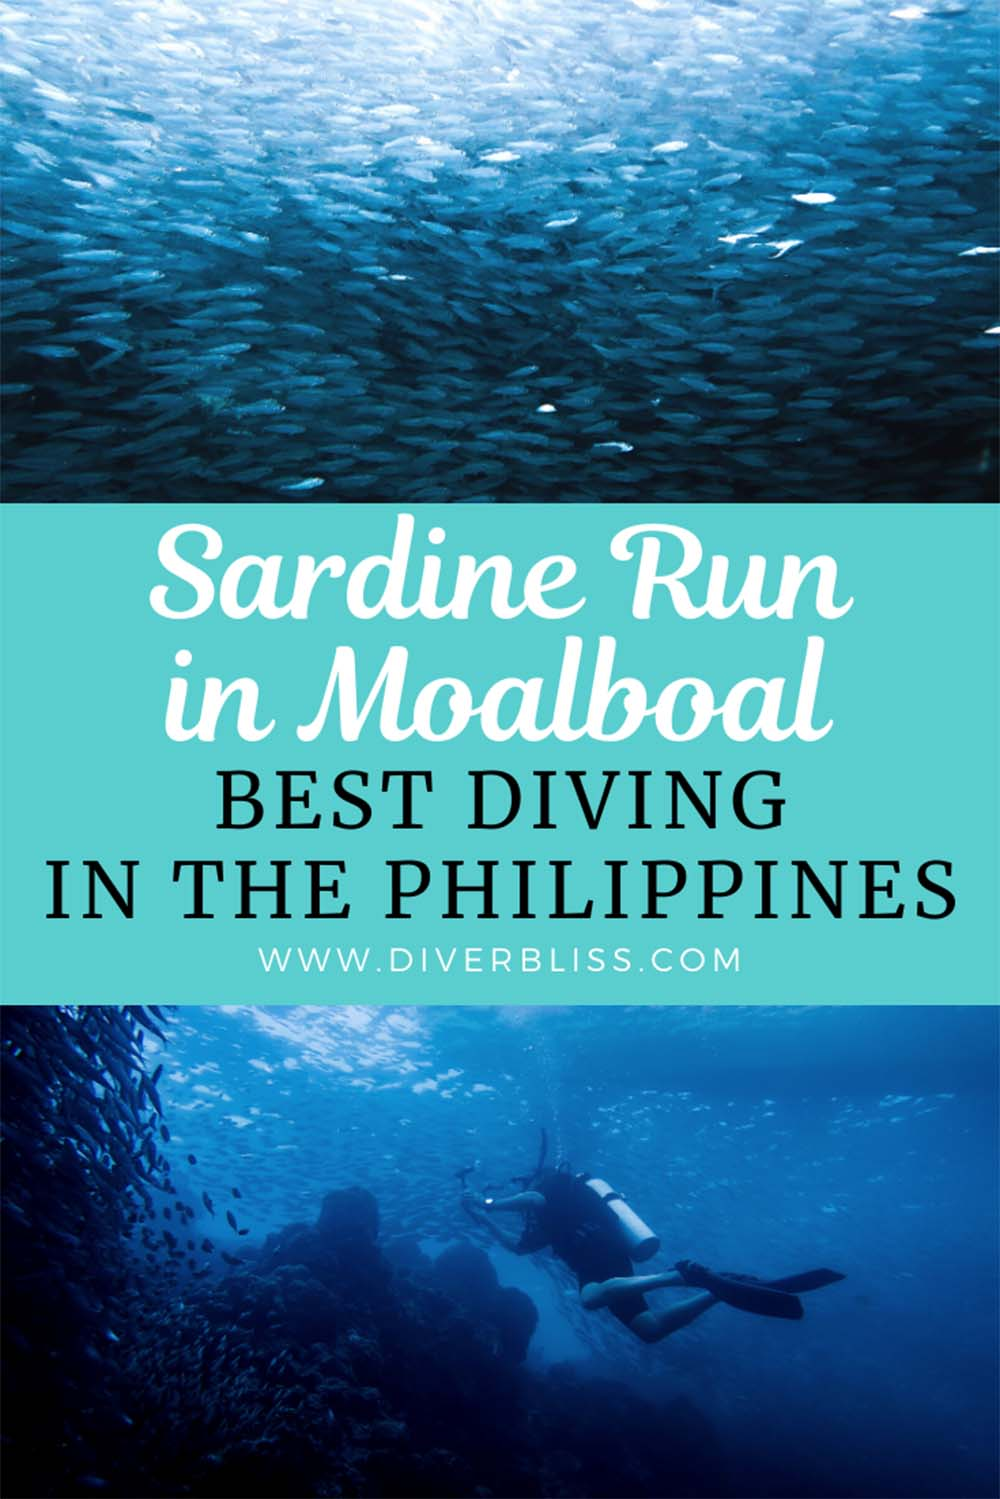 Experience the best diving in the Philippines with the Sardine Run in Moalboal